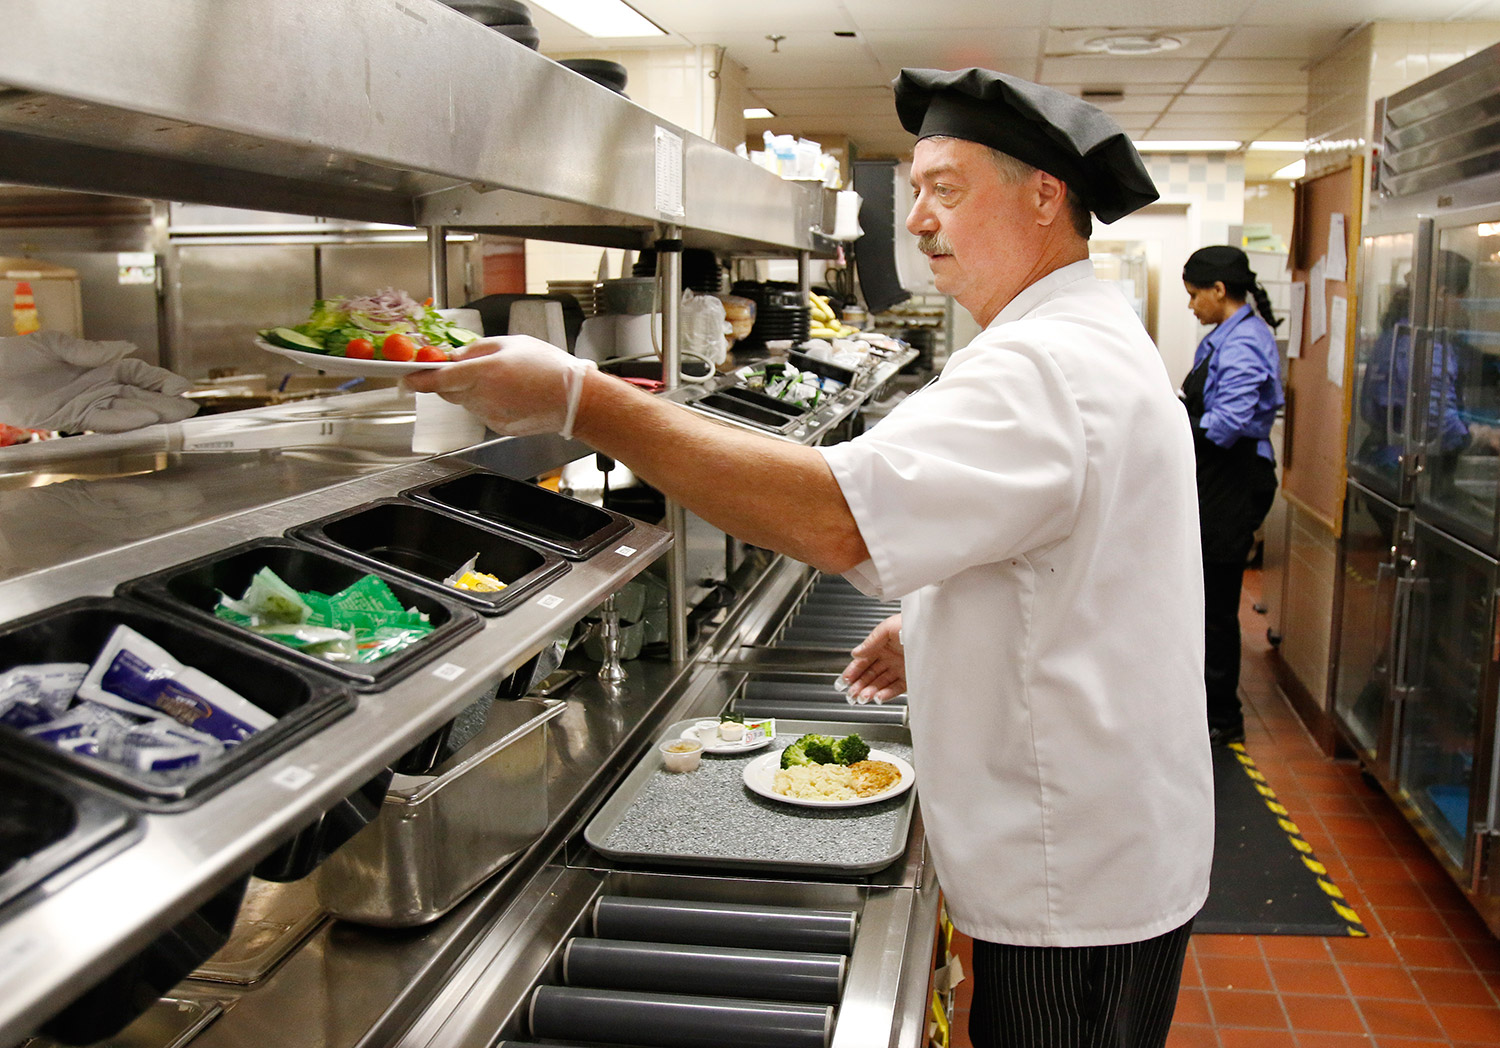 Danny Cummings, production manager and chef at Maine Medical Center, assembles a tray of food at the Portland hospital.